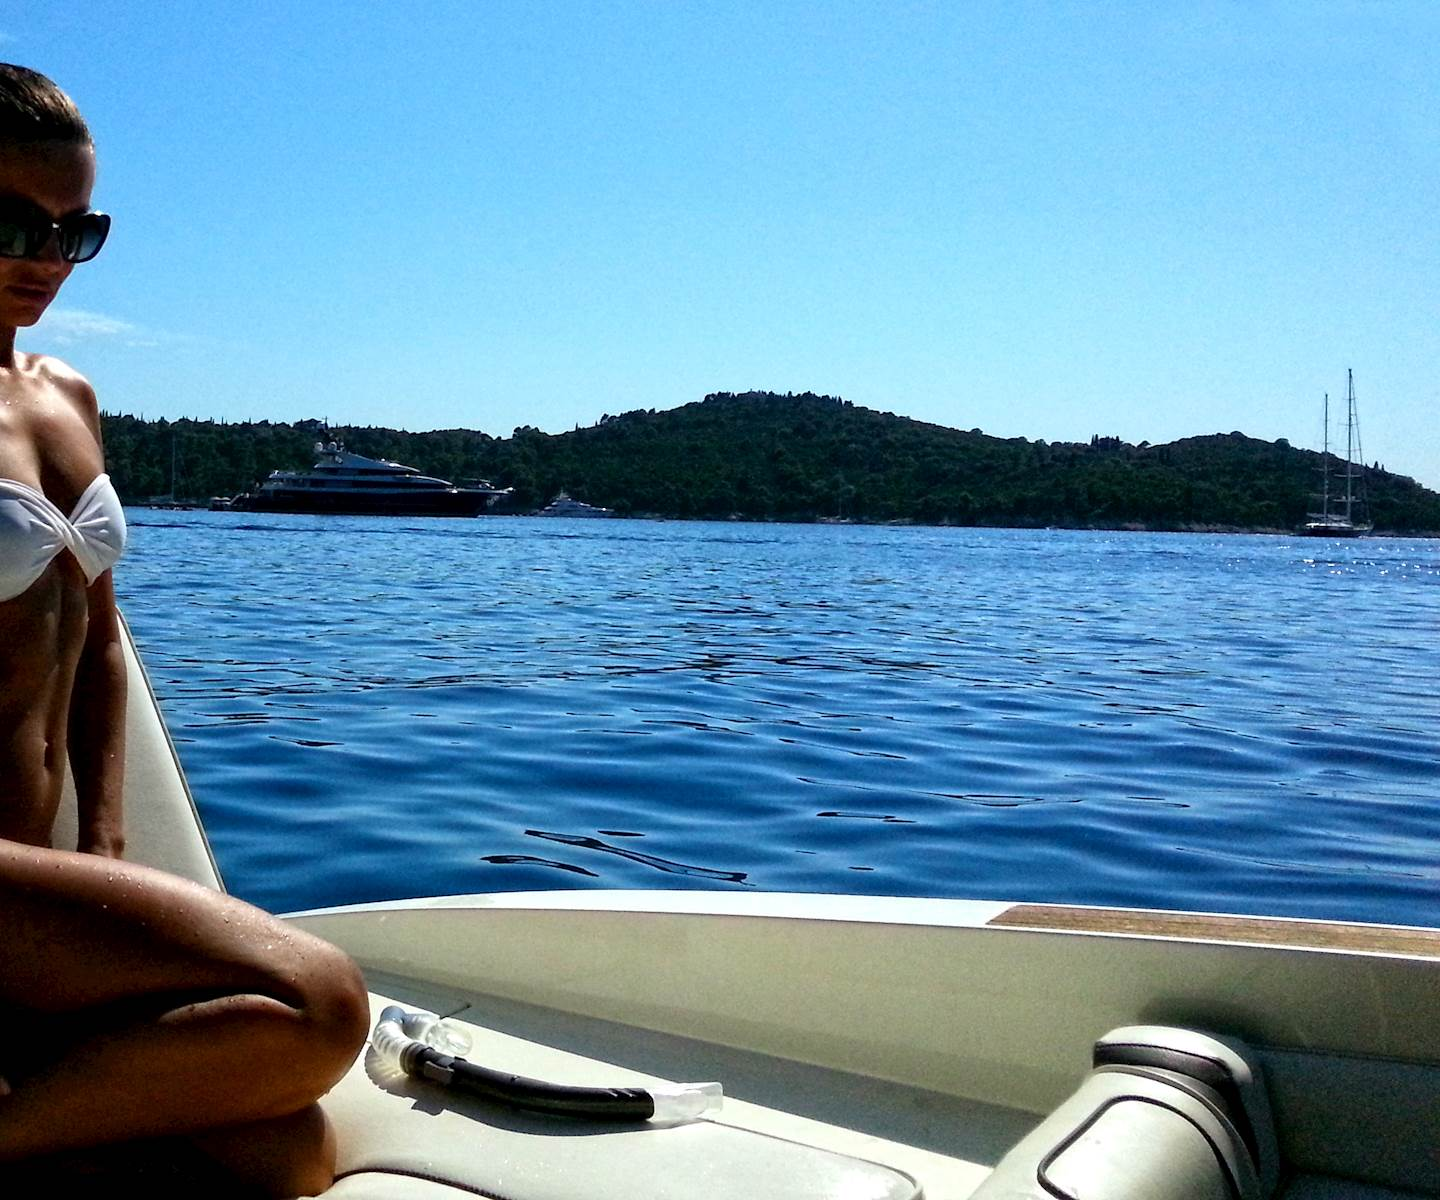 -images-excursions-elaphite-islands-speed-boat-excursion-speedboat-girl-on-sea-ray-240-sunsport-charter-boat-dubrovnik.jpg